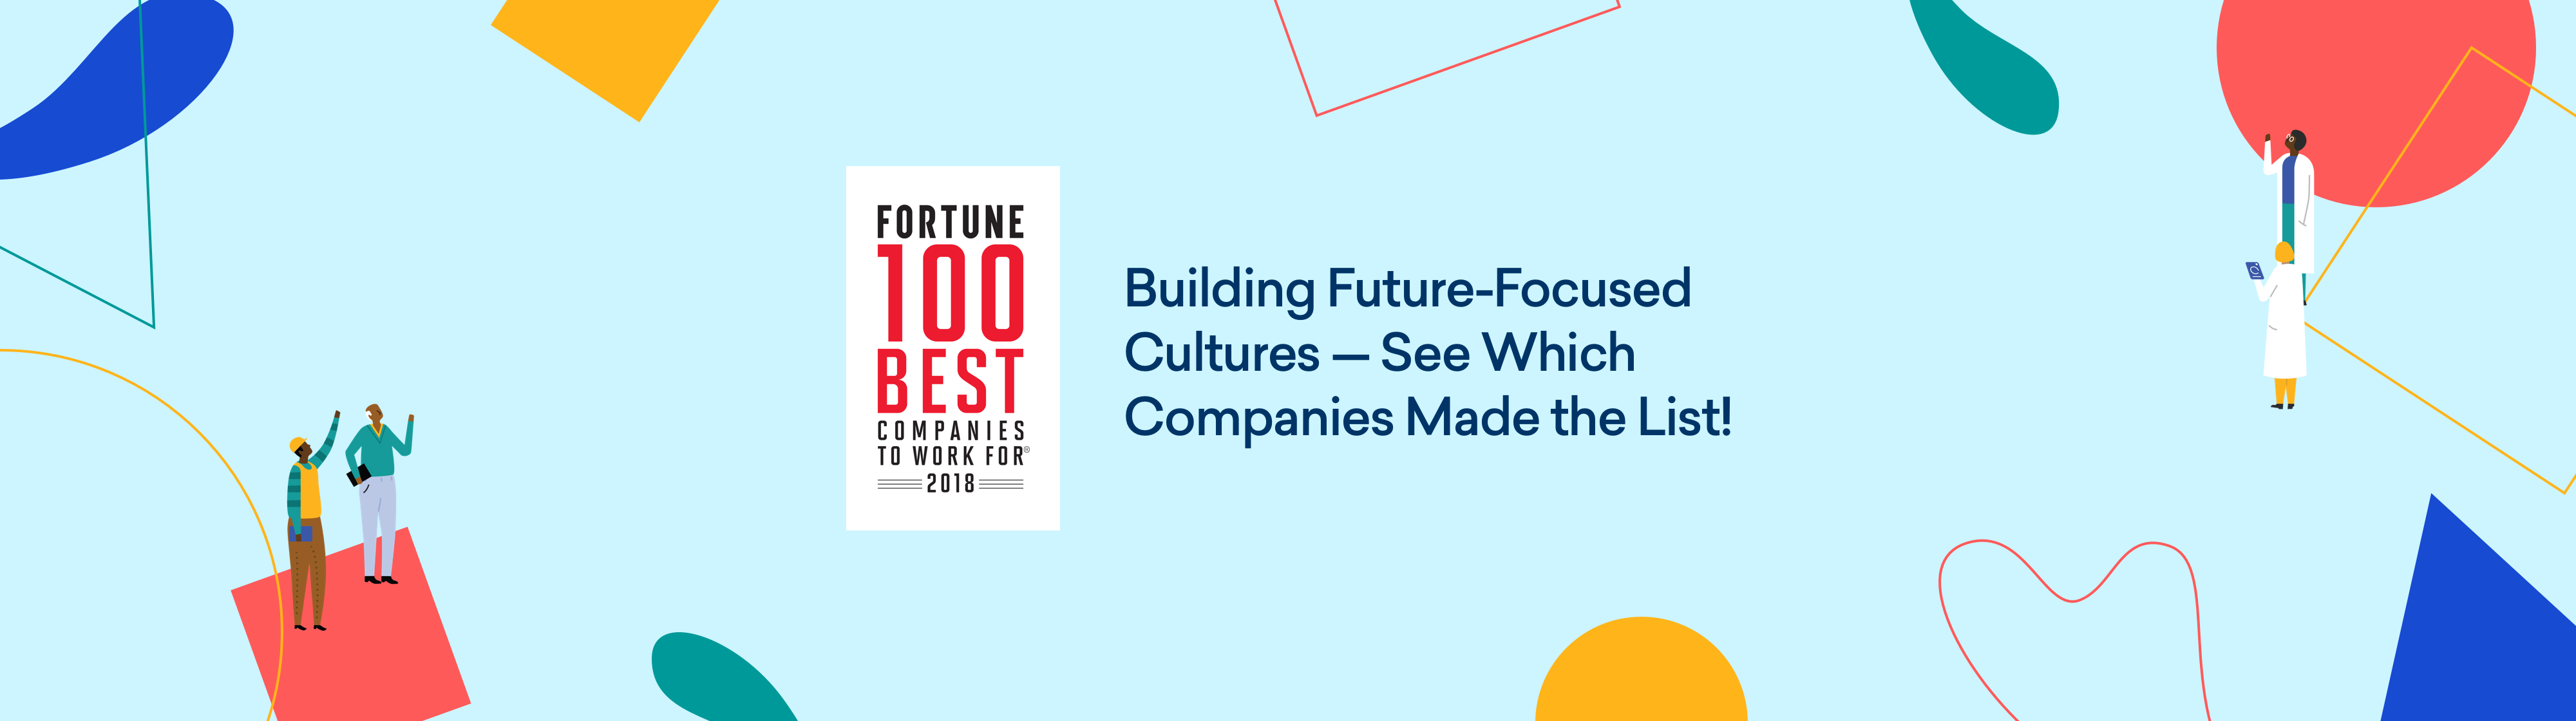 FORTUNE 100 Best Companies to work for, 2018